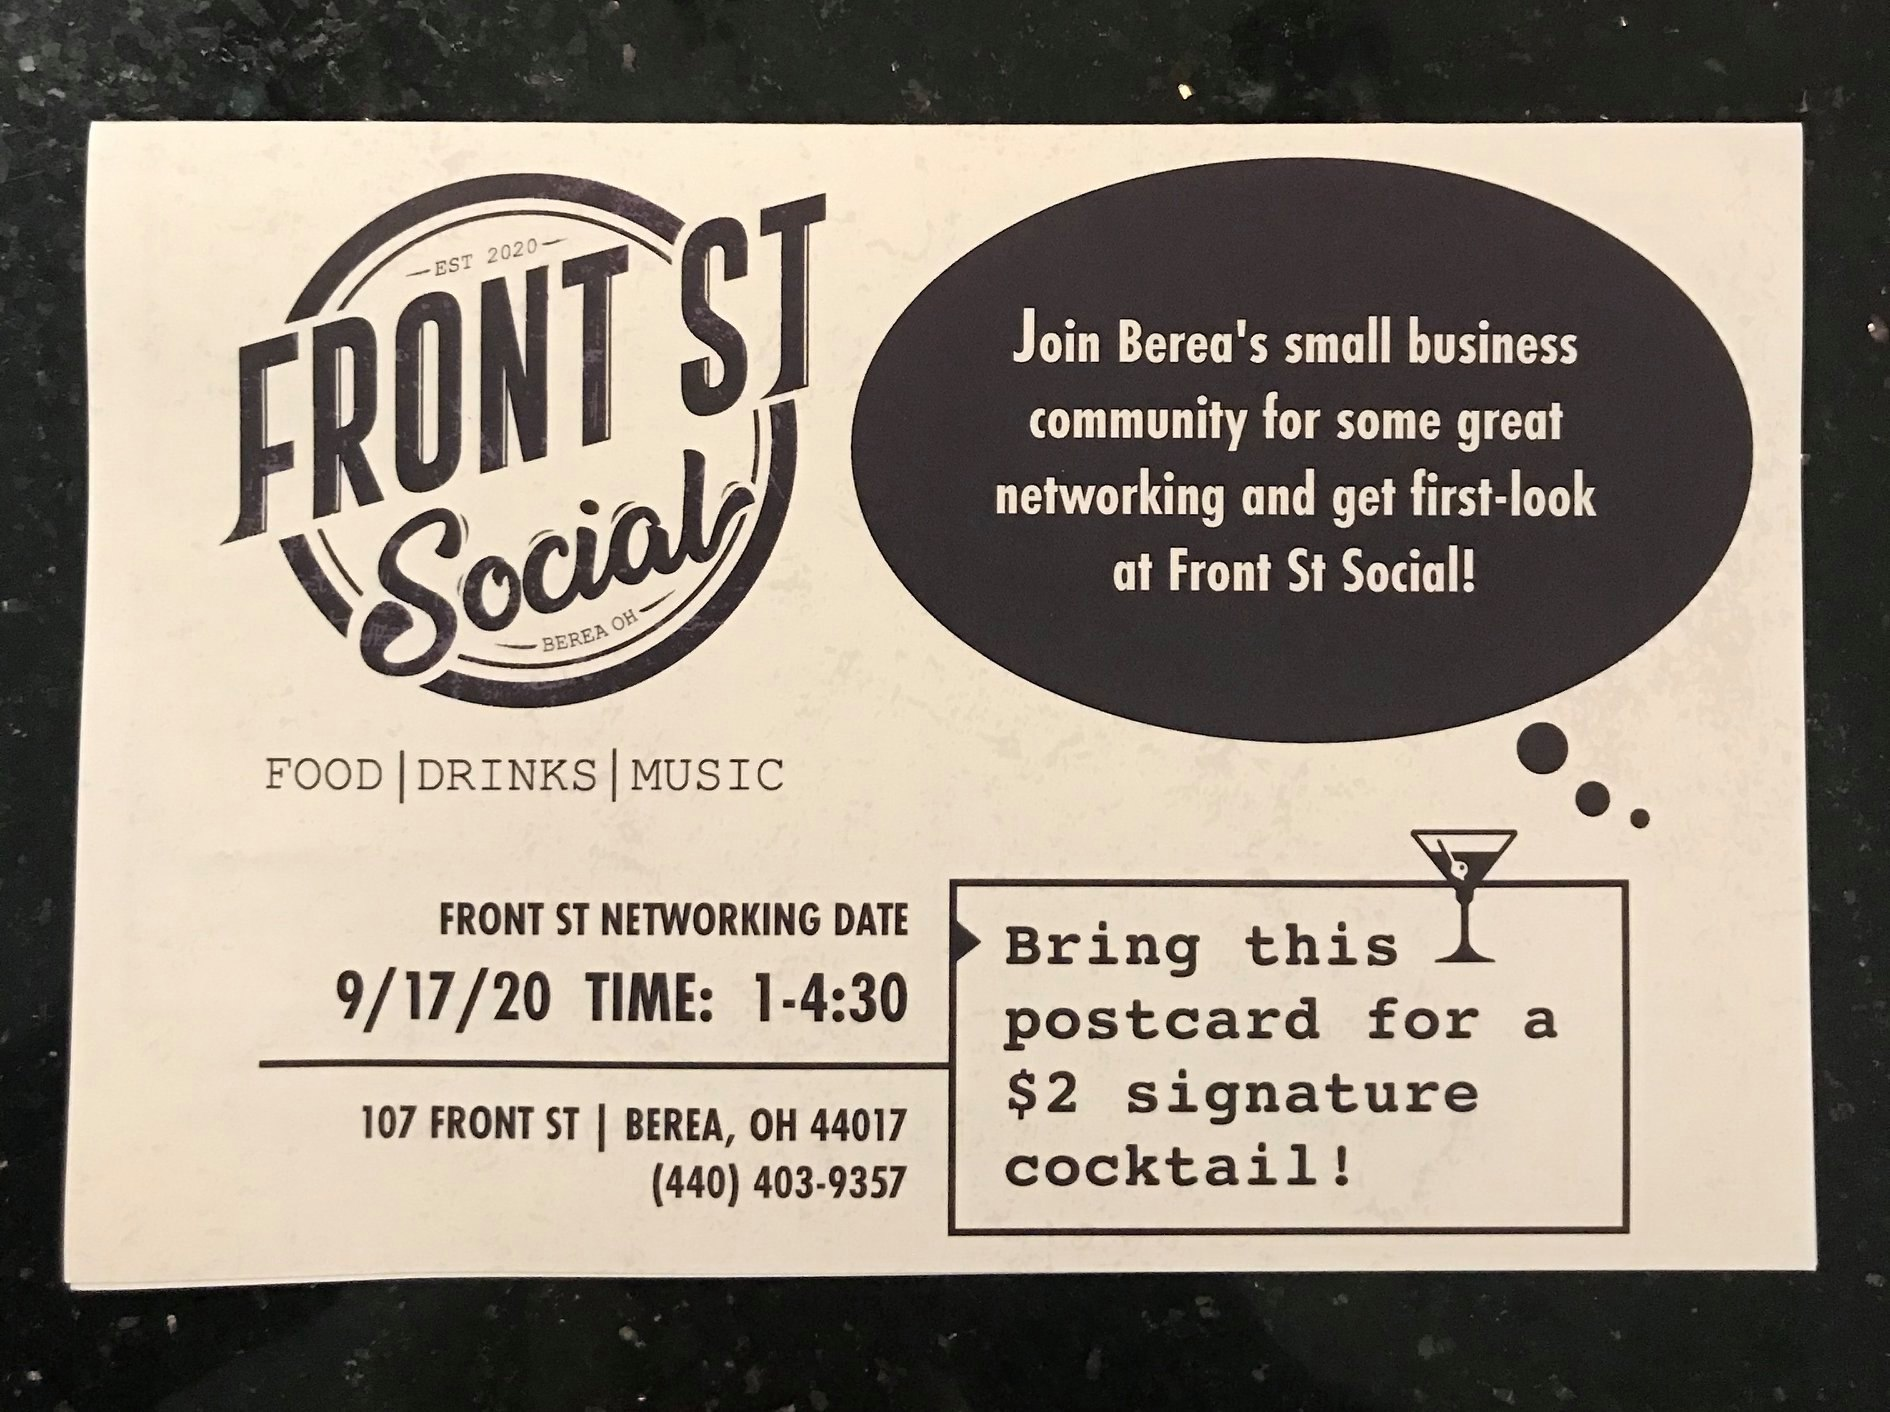 So excited to network with local Berea business professionals at Front St Social next week! This Brand Ambassador delivered over 100 invitations today Who's representing you?